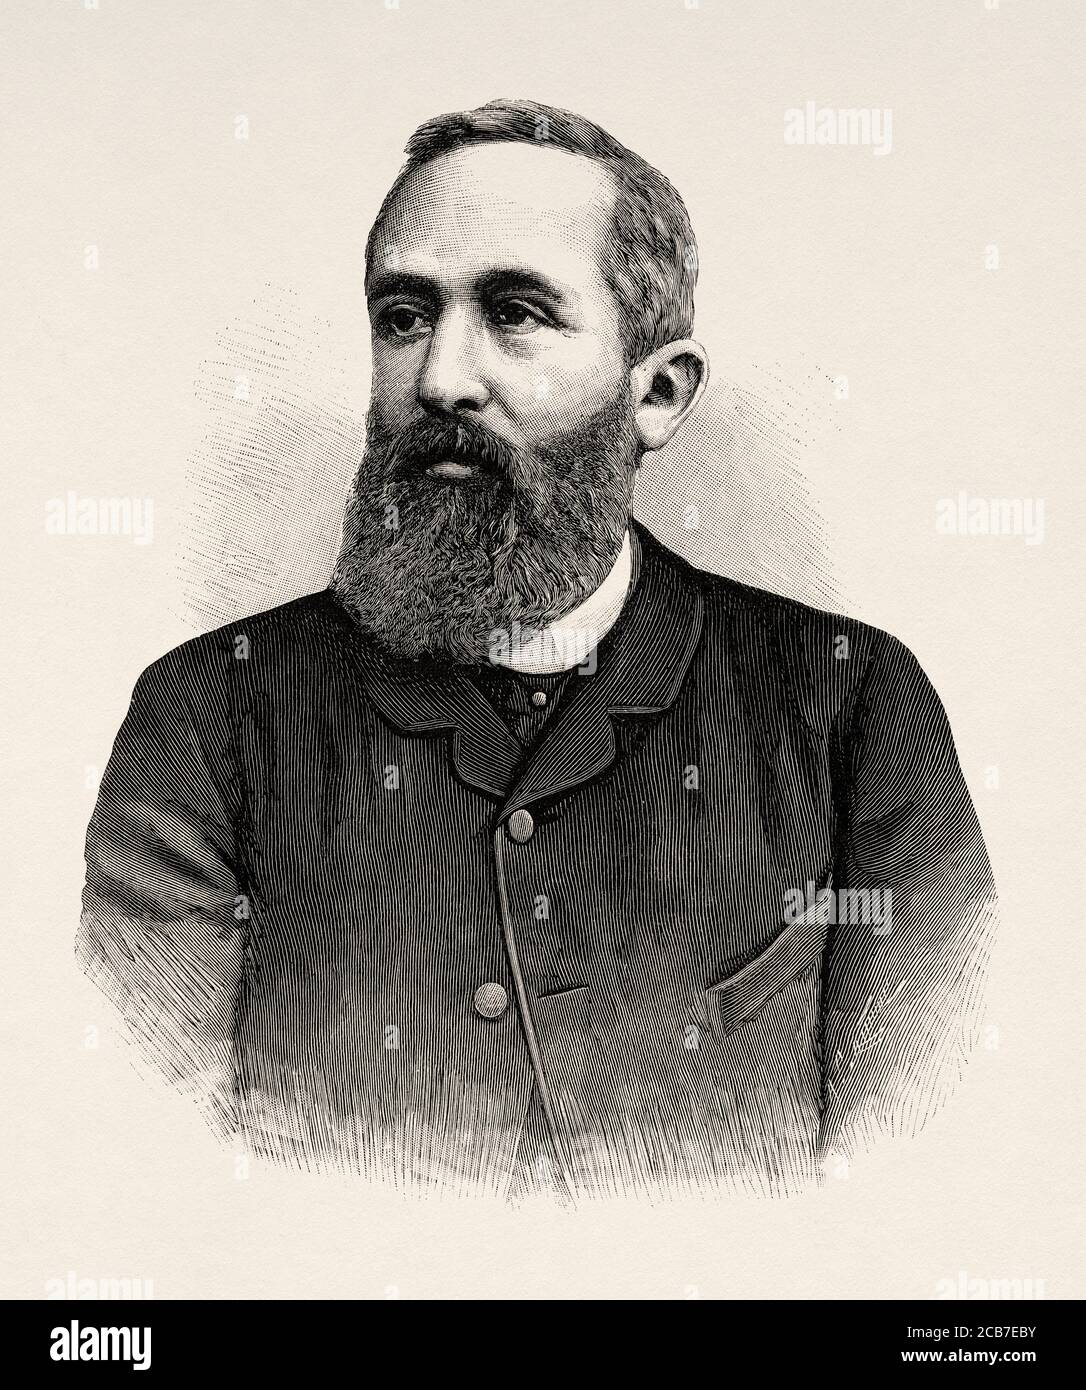 Portrait of Hermann Levi (Giessen 1839 - Munich 1900) was a German conductor, conductor of the Rotterdam, Karlsruhe and Munich operas. Germany. Old XIX century engraved illustration from La Ilustracion Española y Americana 1894 Stock Photo